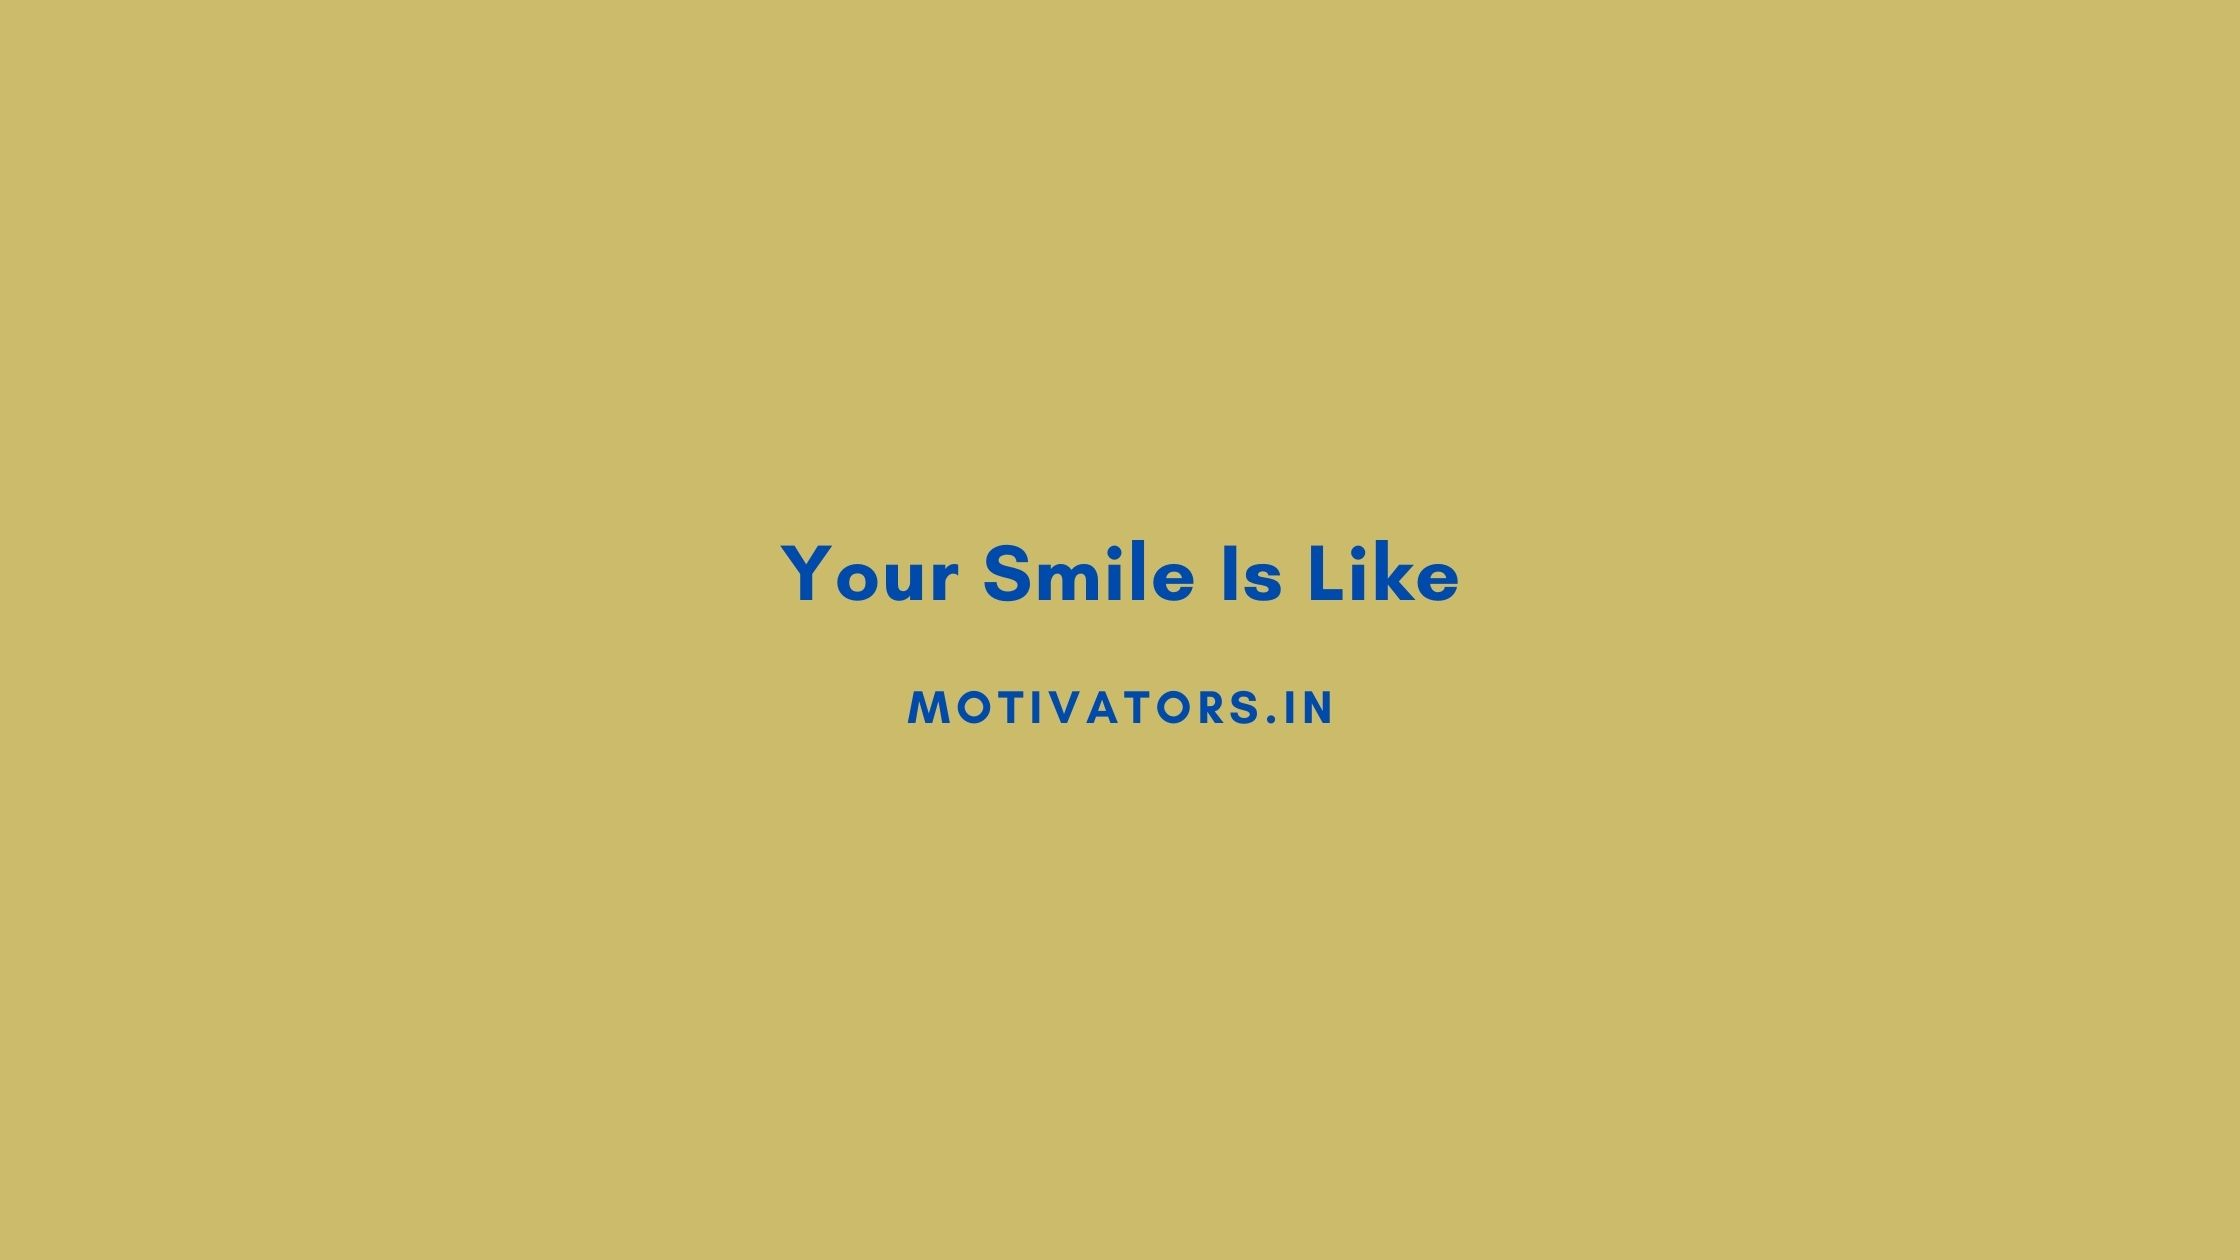 Your Smile Is Like